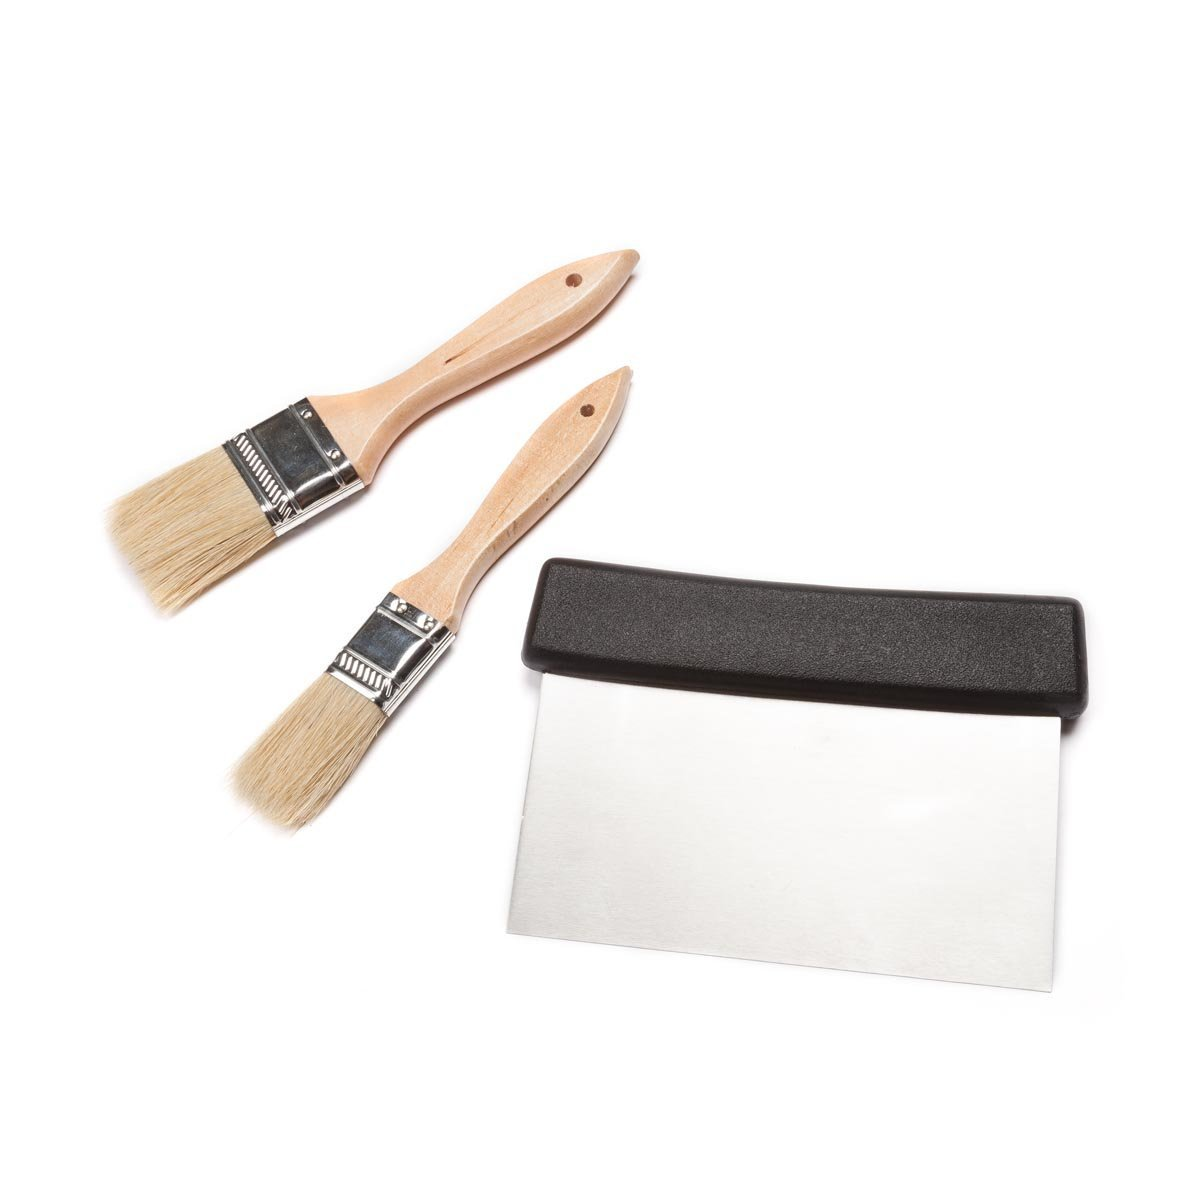 3 Piece Pastry Brush and Dough Scraper Set, By FortheChef Ship from US by